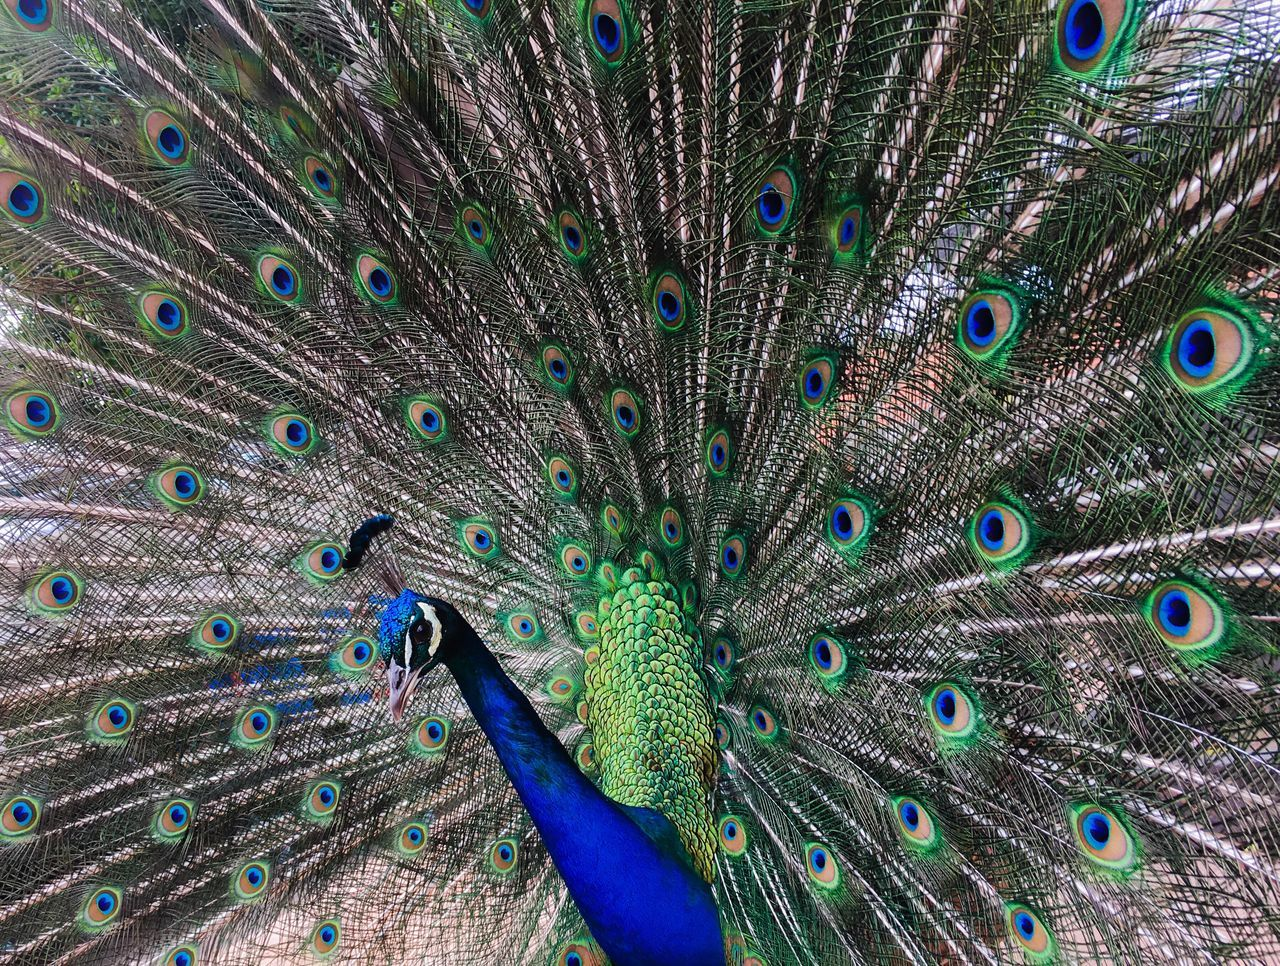 Peacock Peacock Feather Peacock Feathers Peacock Colors Peacock Blue Beauty In Nature